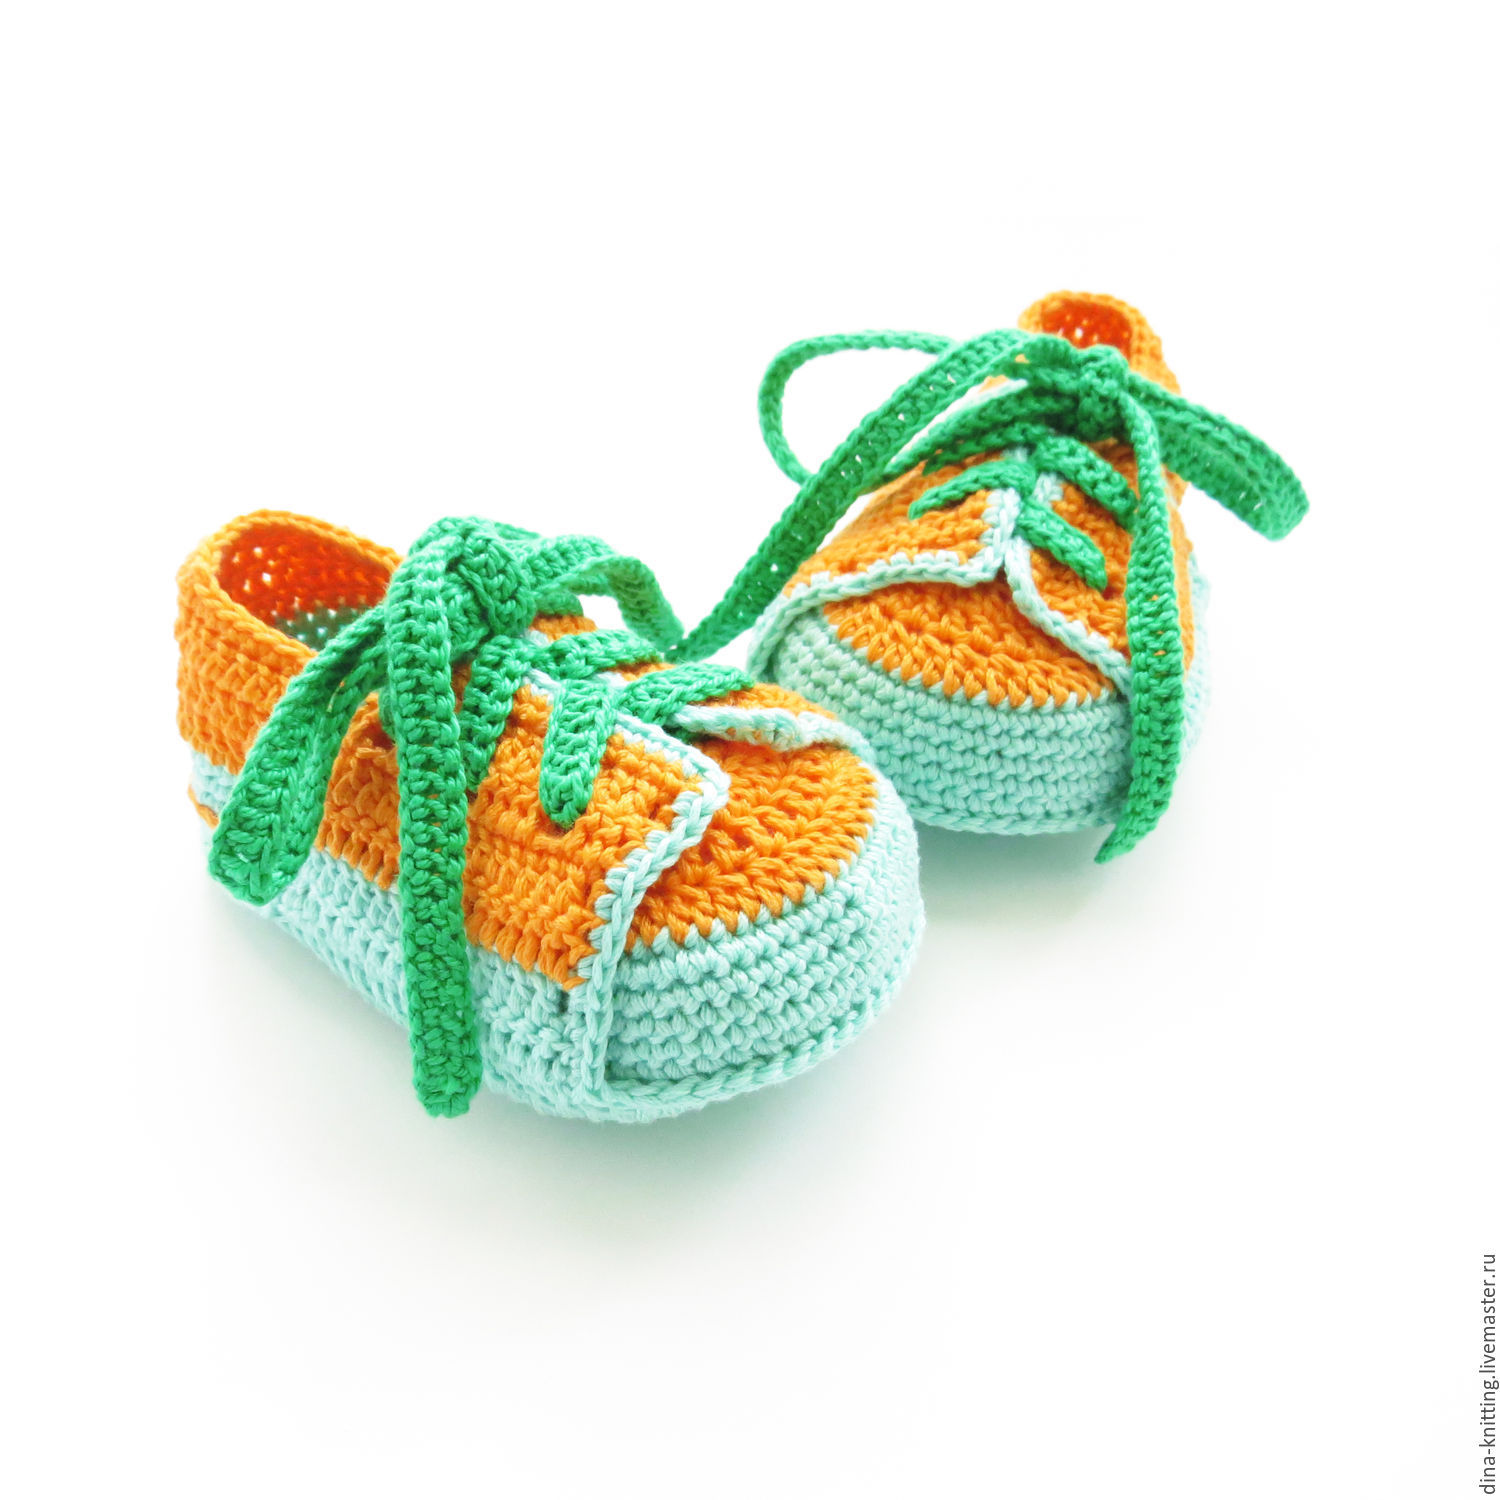 booties knitted baby booties shoes baby booties shoes baby booties